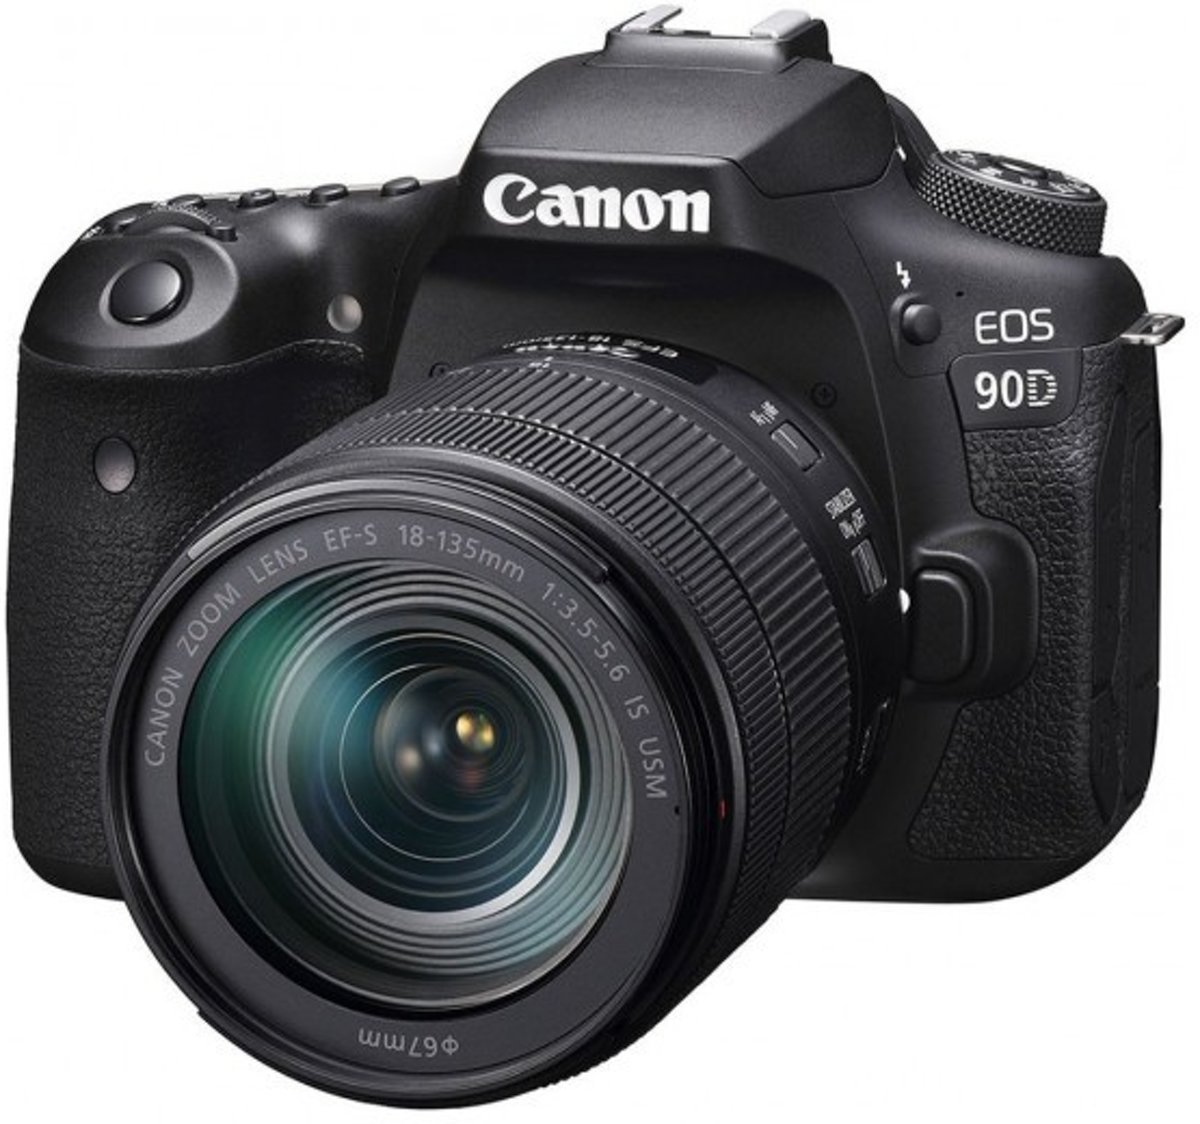 Canon EOS 90D + EF-S 18-135mm f/3.5-5.6 IS USM - Zwart